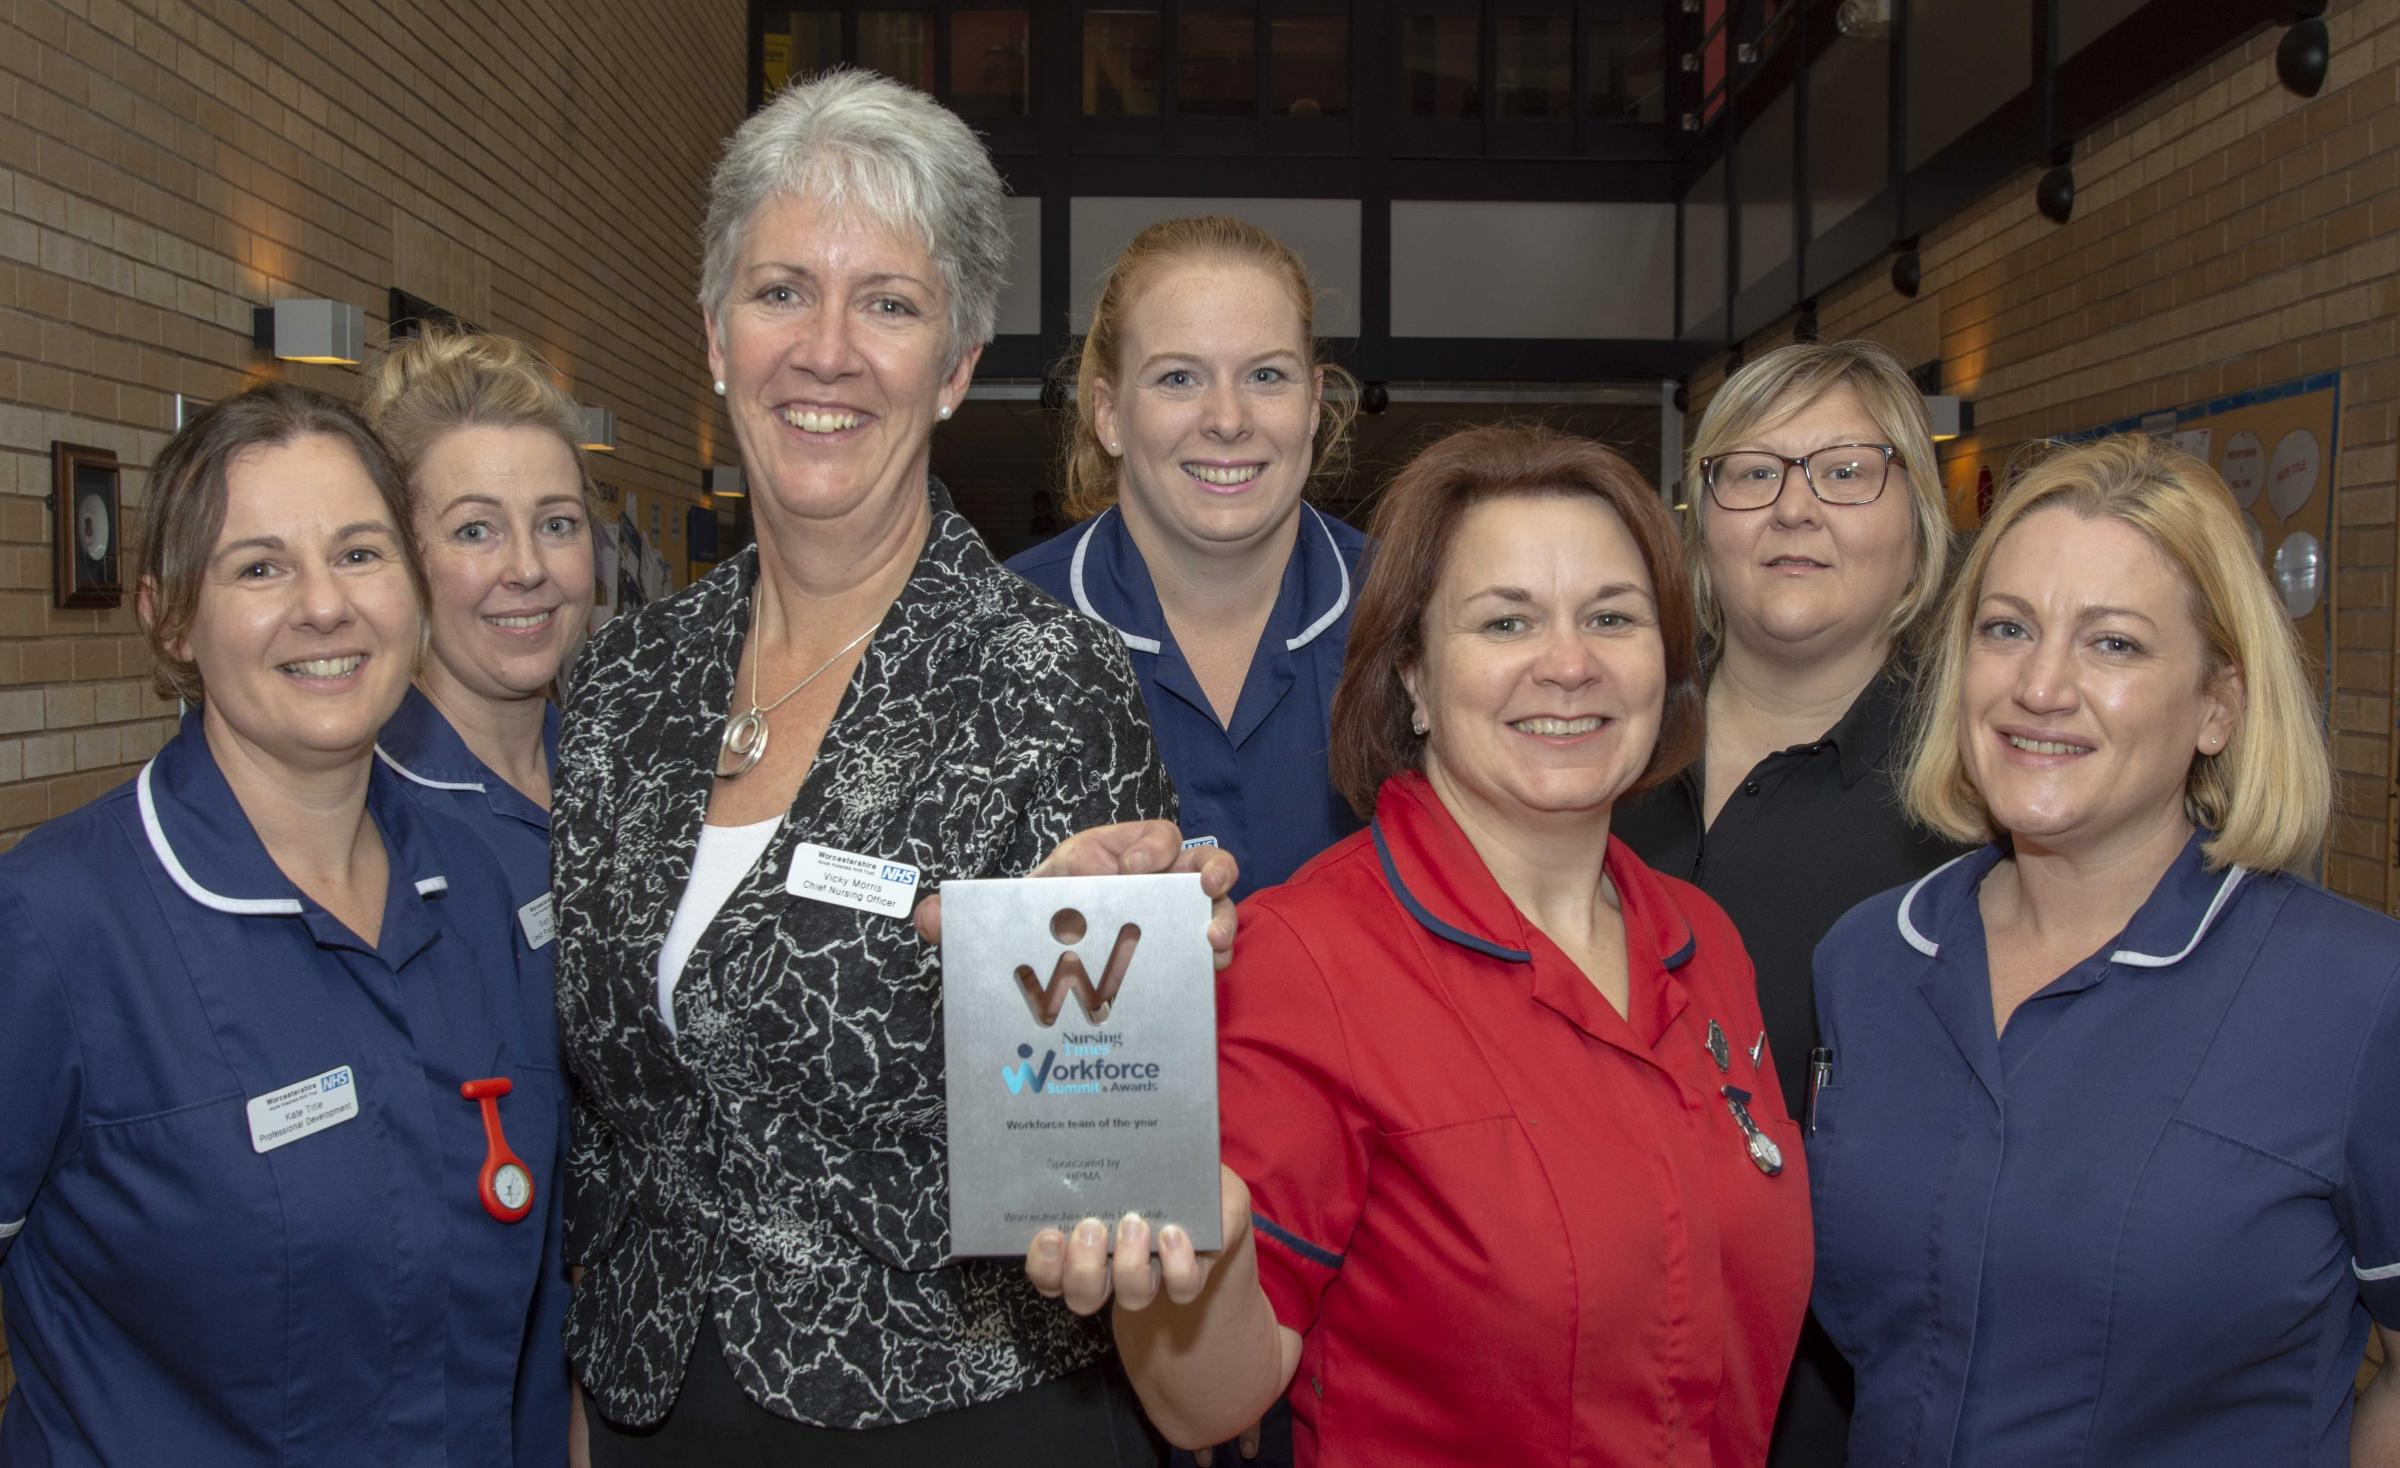 CELEBRATE: Kate Title, Sian Thomas, Vicky Morris, Rebecca Lloyd, Jackie Edwards, Deborah Ford and Kate Knight